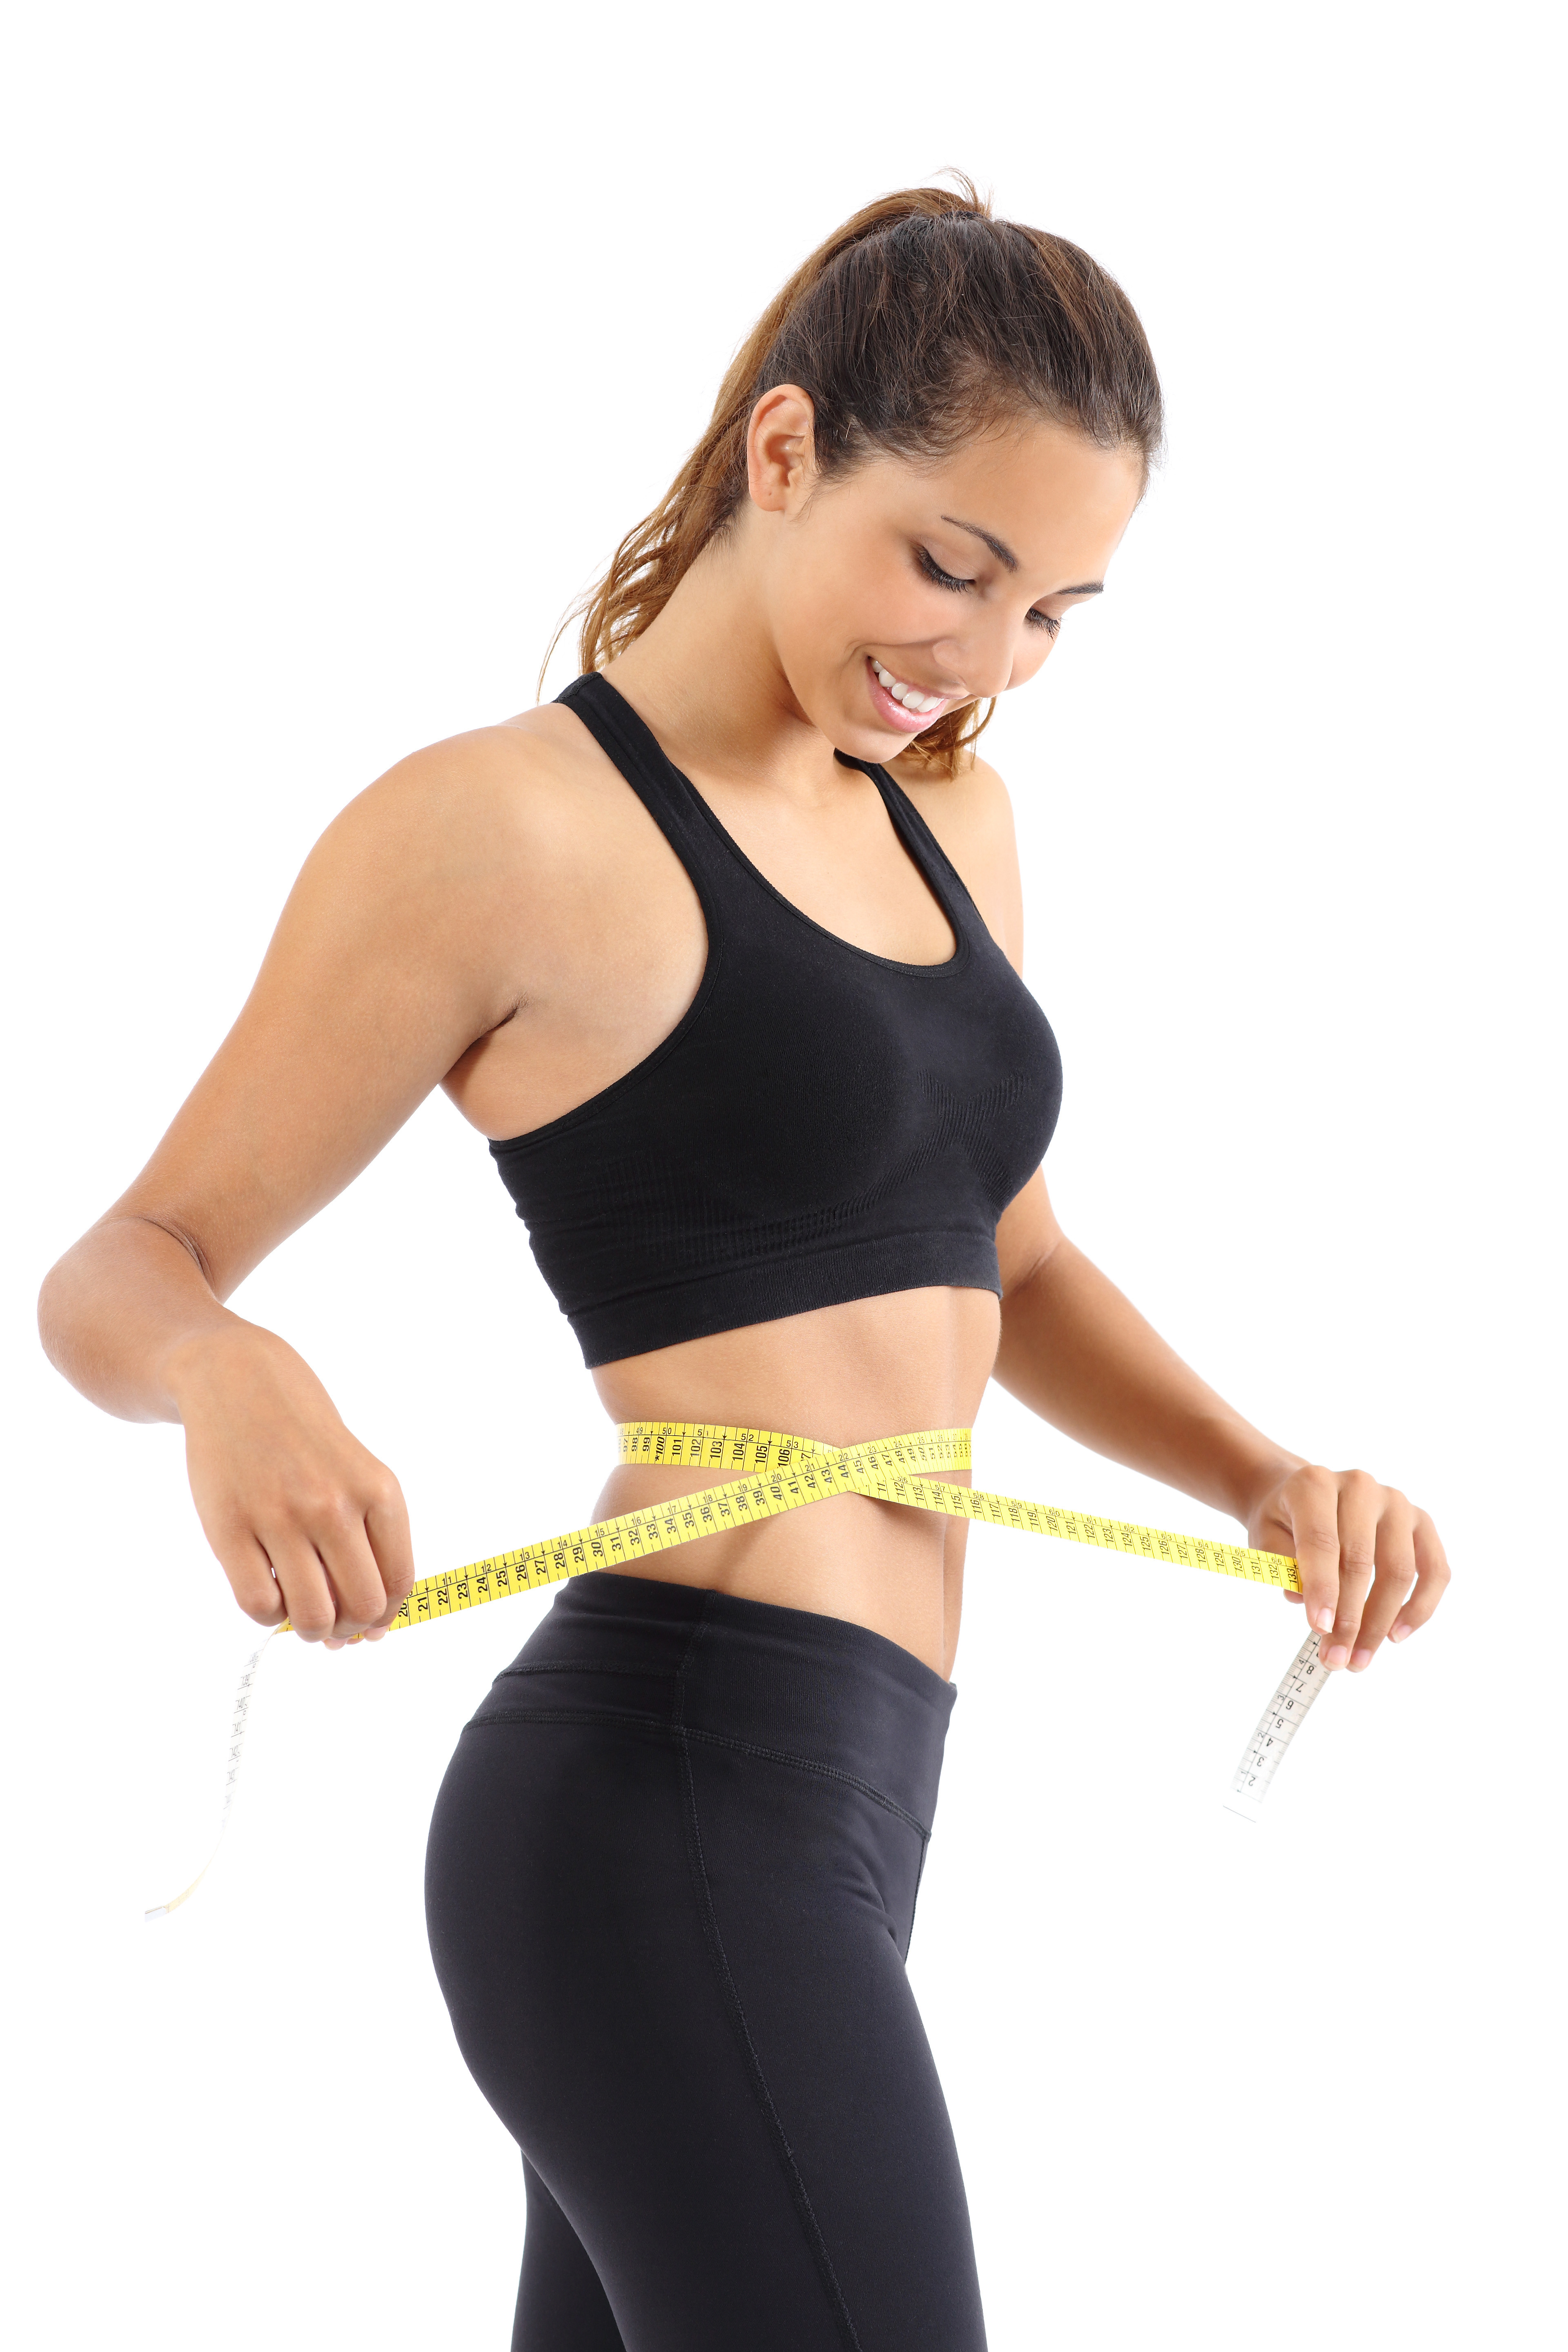 Make or slim weight loss have hundreds